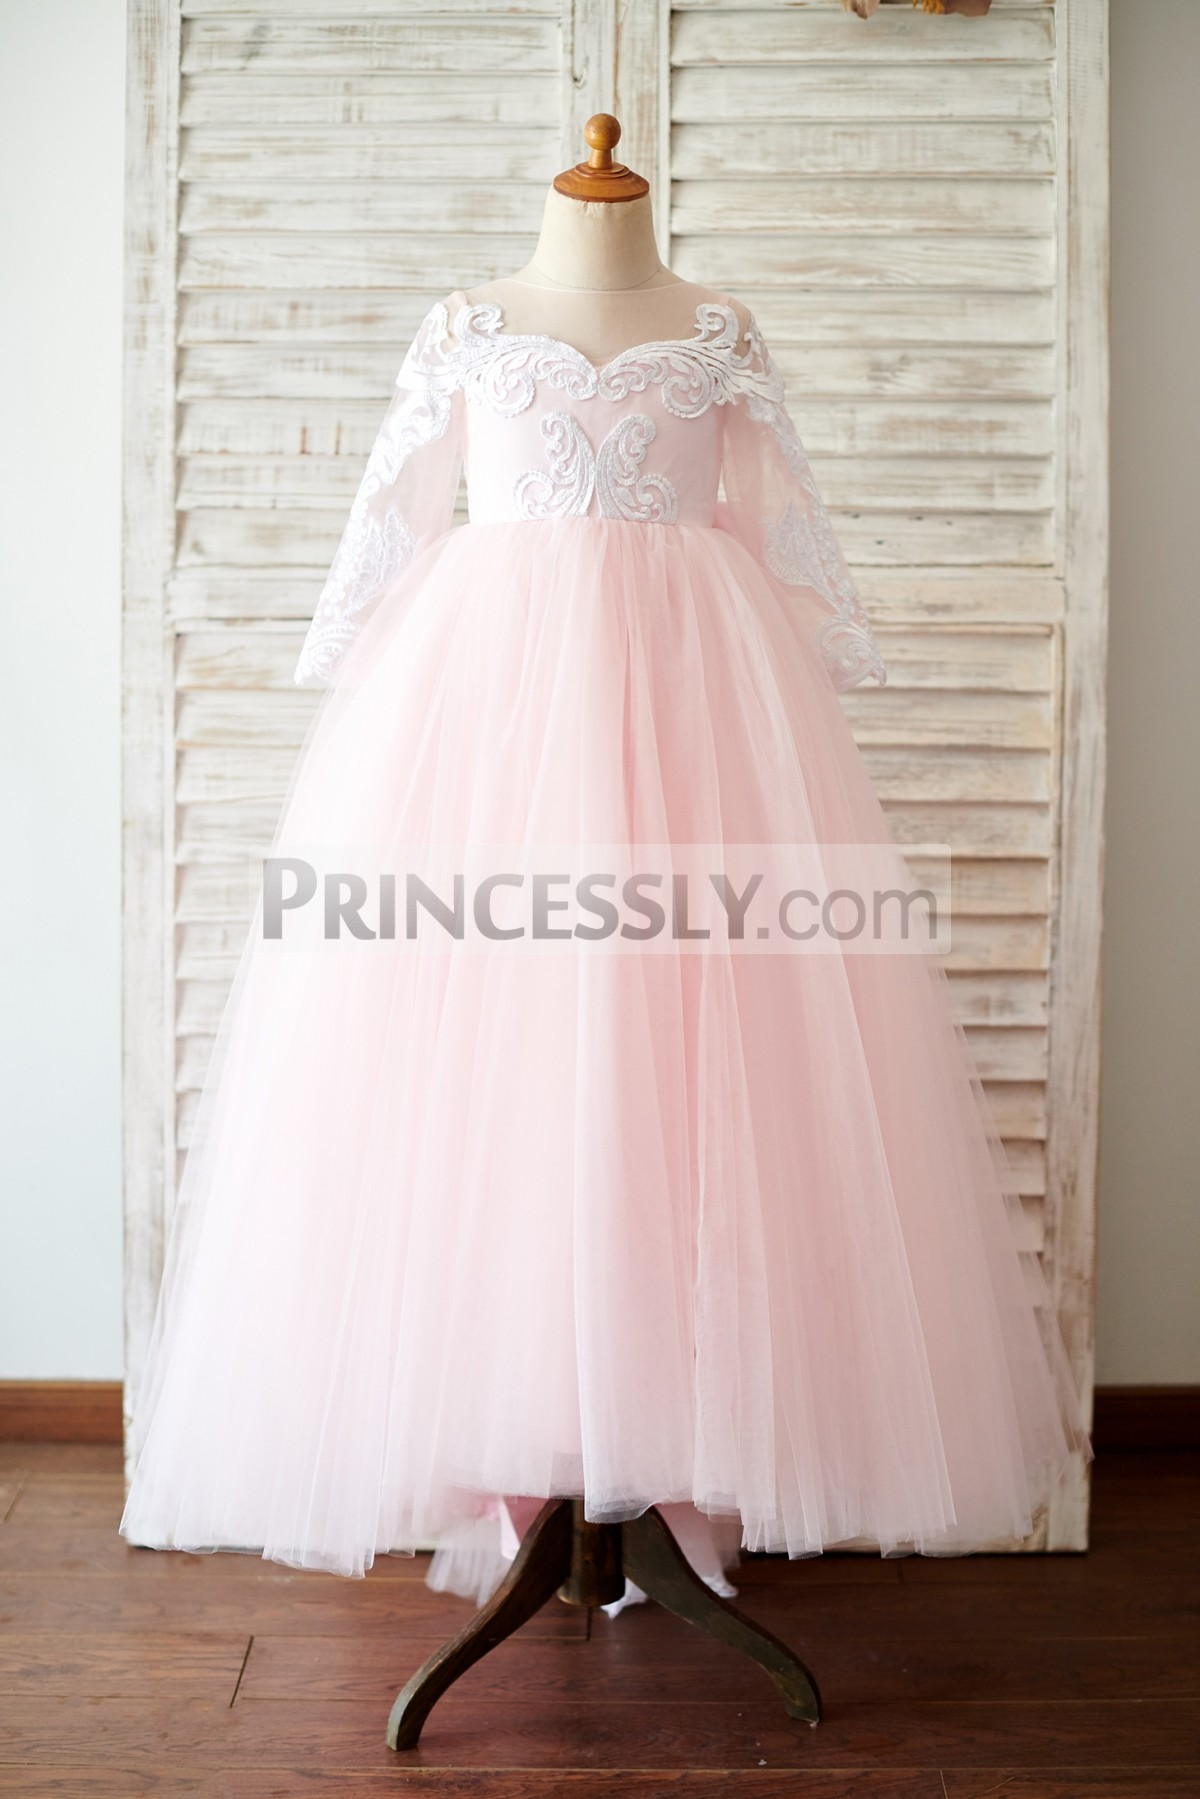 Sheer Long Sleeves Ivory Lace Pink Tulle Wedding Baby Girl Dress